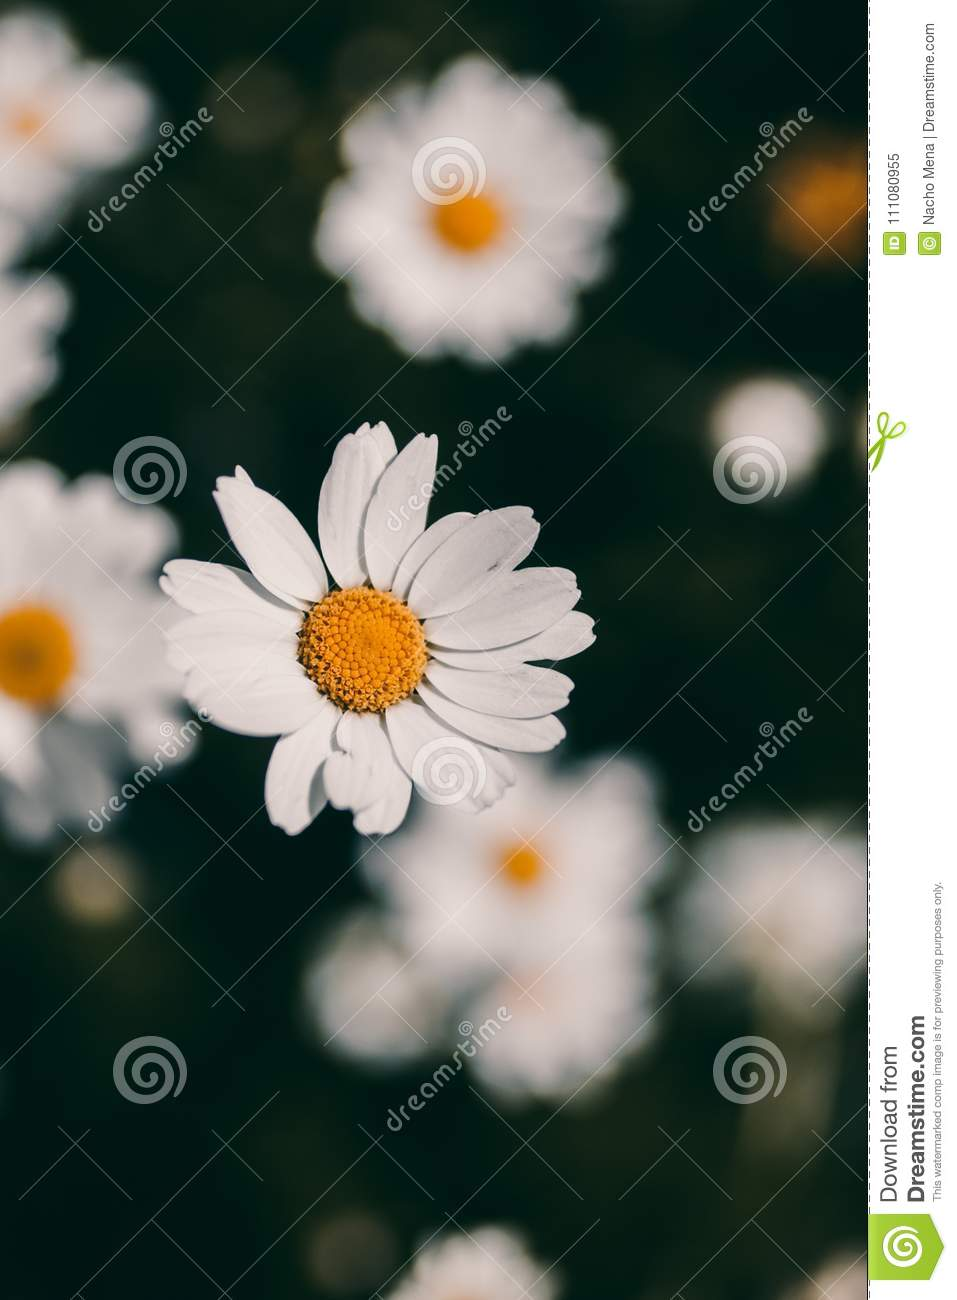 Daisies vintage background closeup of daisy flower in vintage style royalty free stock photo izmirmasajfo Choice Image